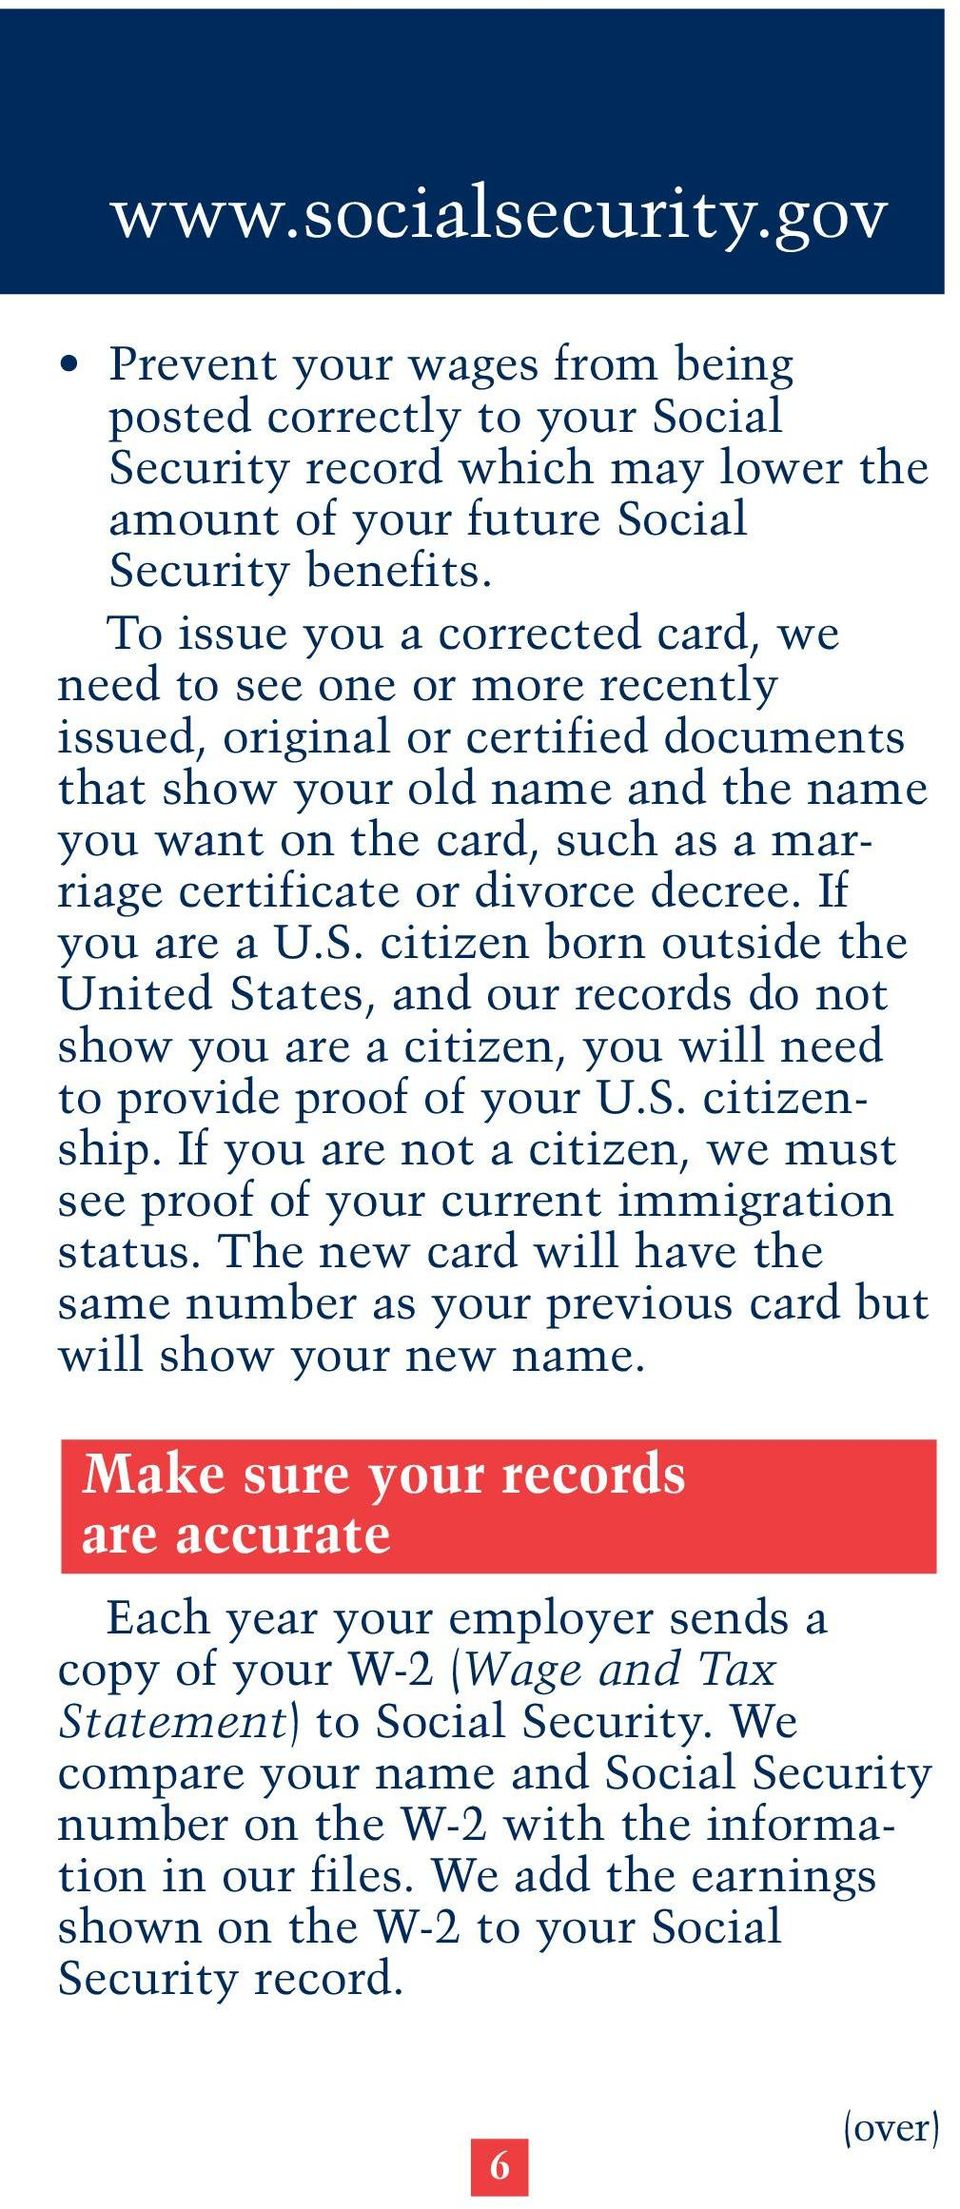 divorce decree. If you are a U.S. citizen born outside the United States, and our records do not show you are a citizen, you will need to provide proof of your U.S. citizenship.